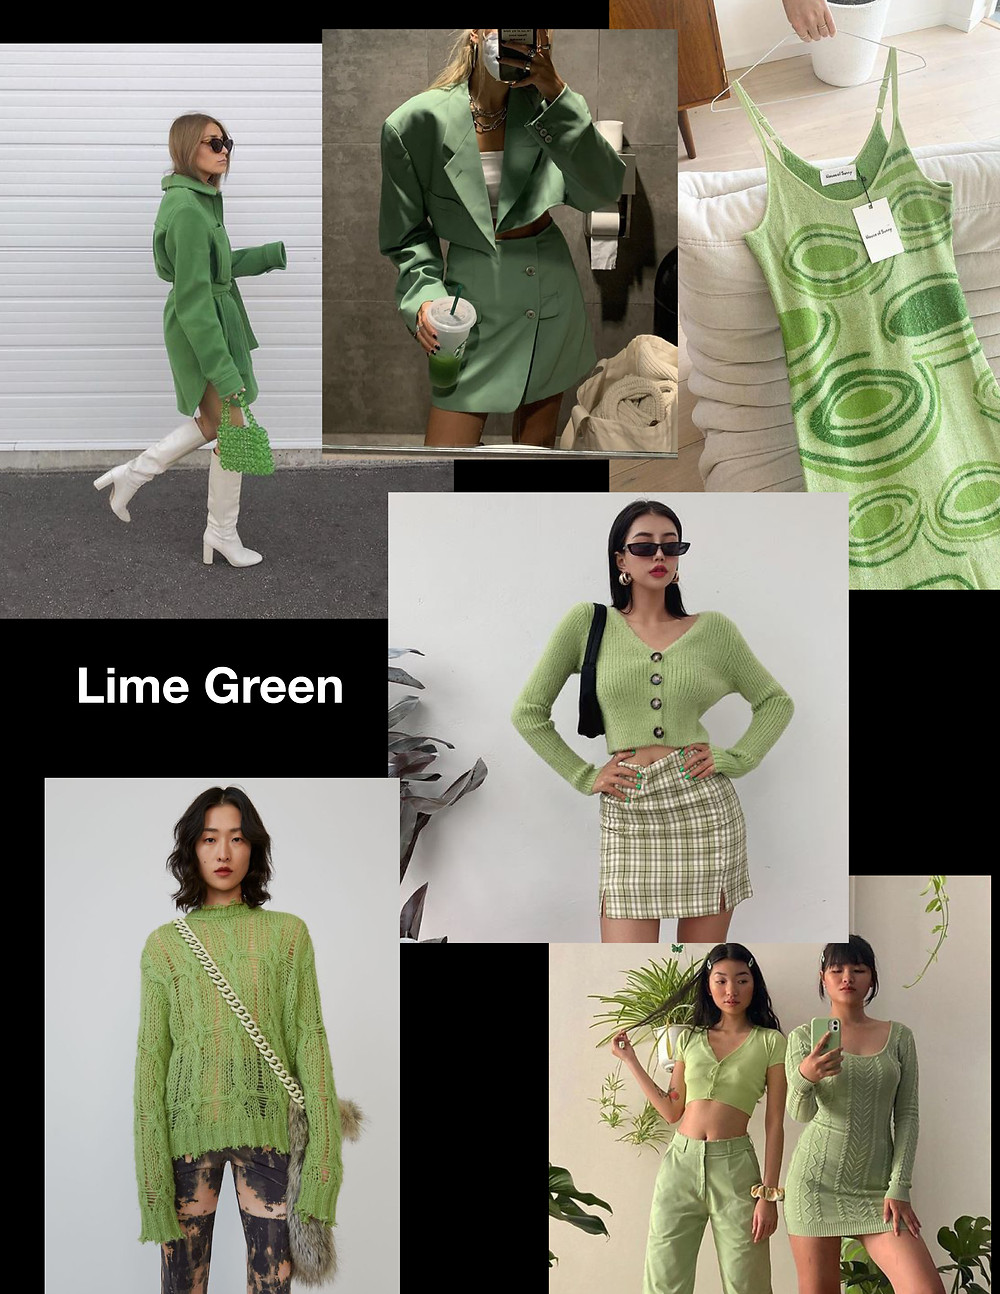 fashion trends for summer 2021, green outfits, shopping guide, stylist advice, lime green outfits